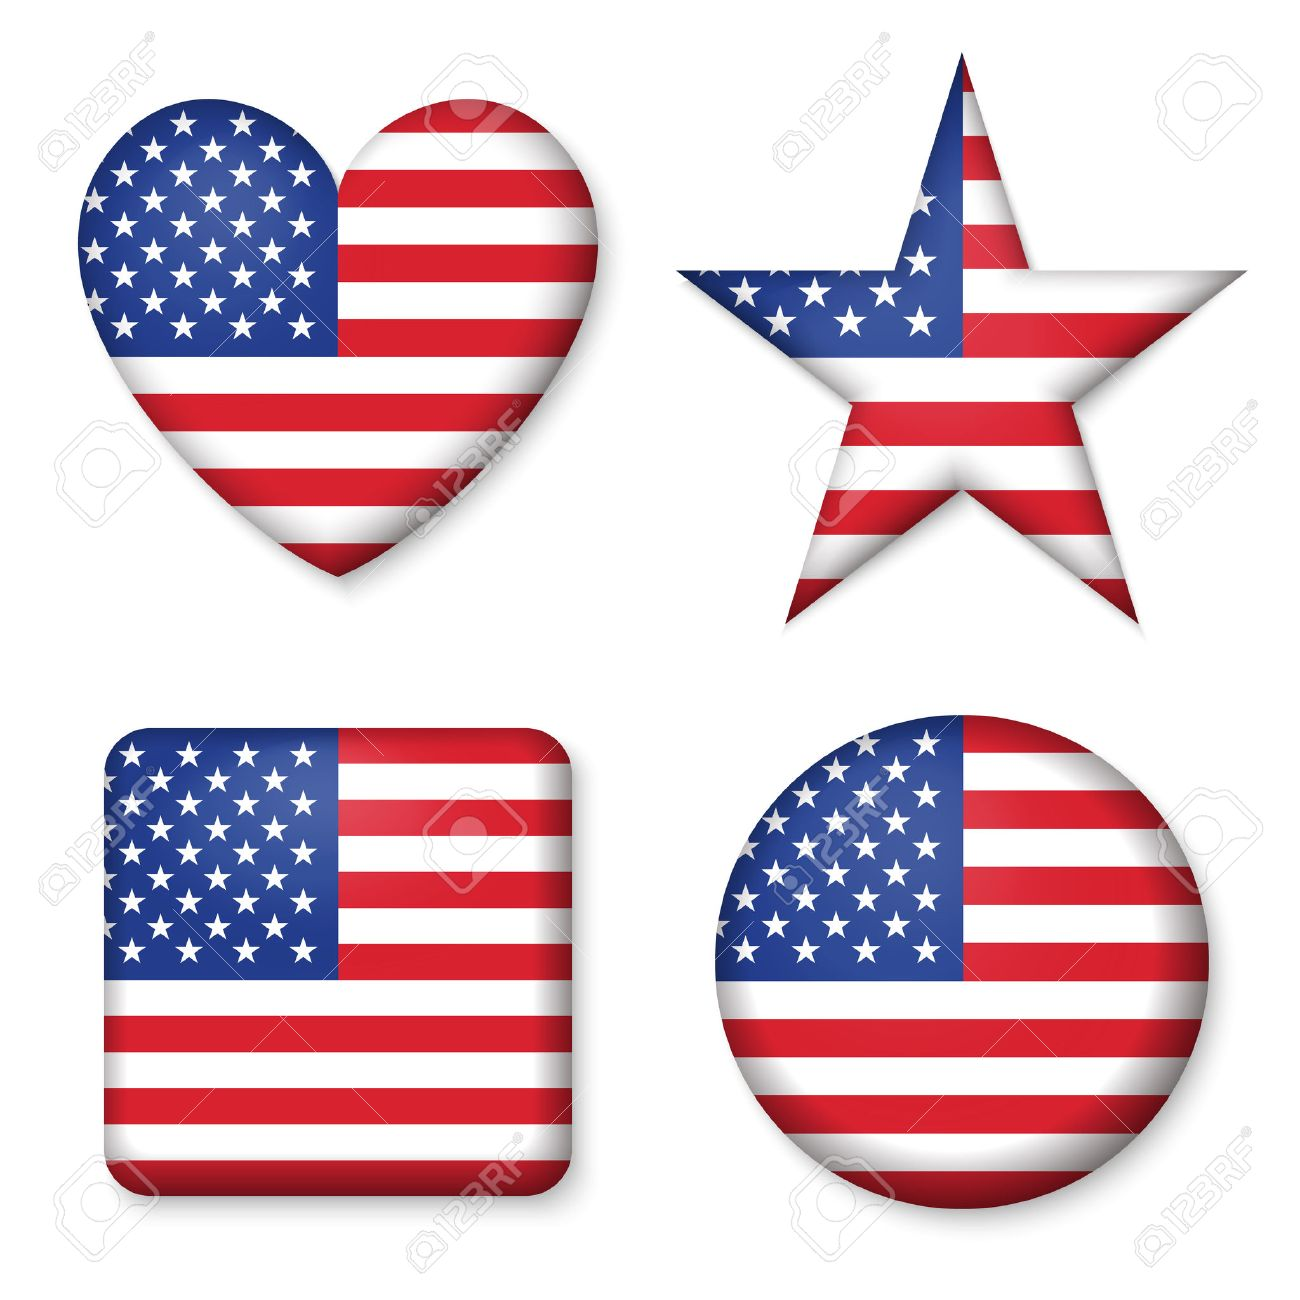 American United States Flag in glossy form button of icon. USA emblem isolated on white background. National concept sign. Independence Day Symbol. 4 July. Set of circle, star, heart, square elements - 57513798